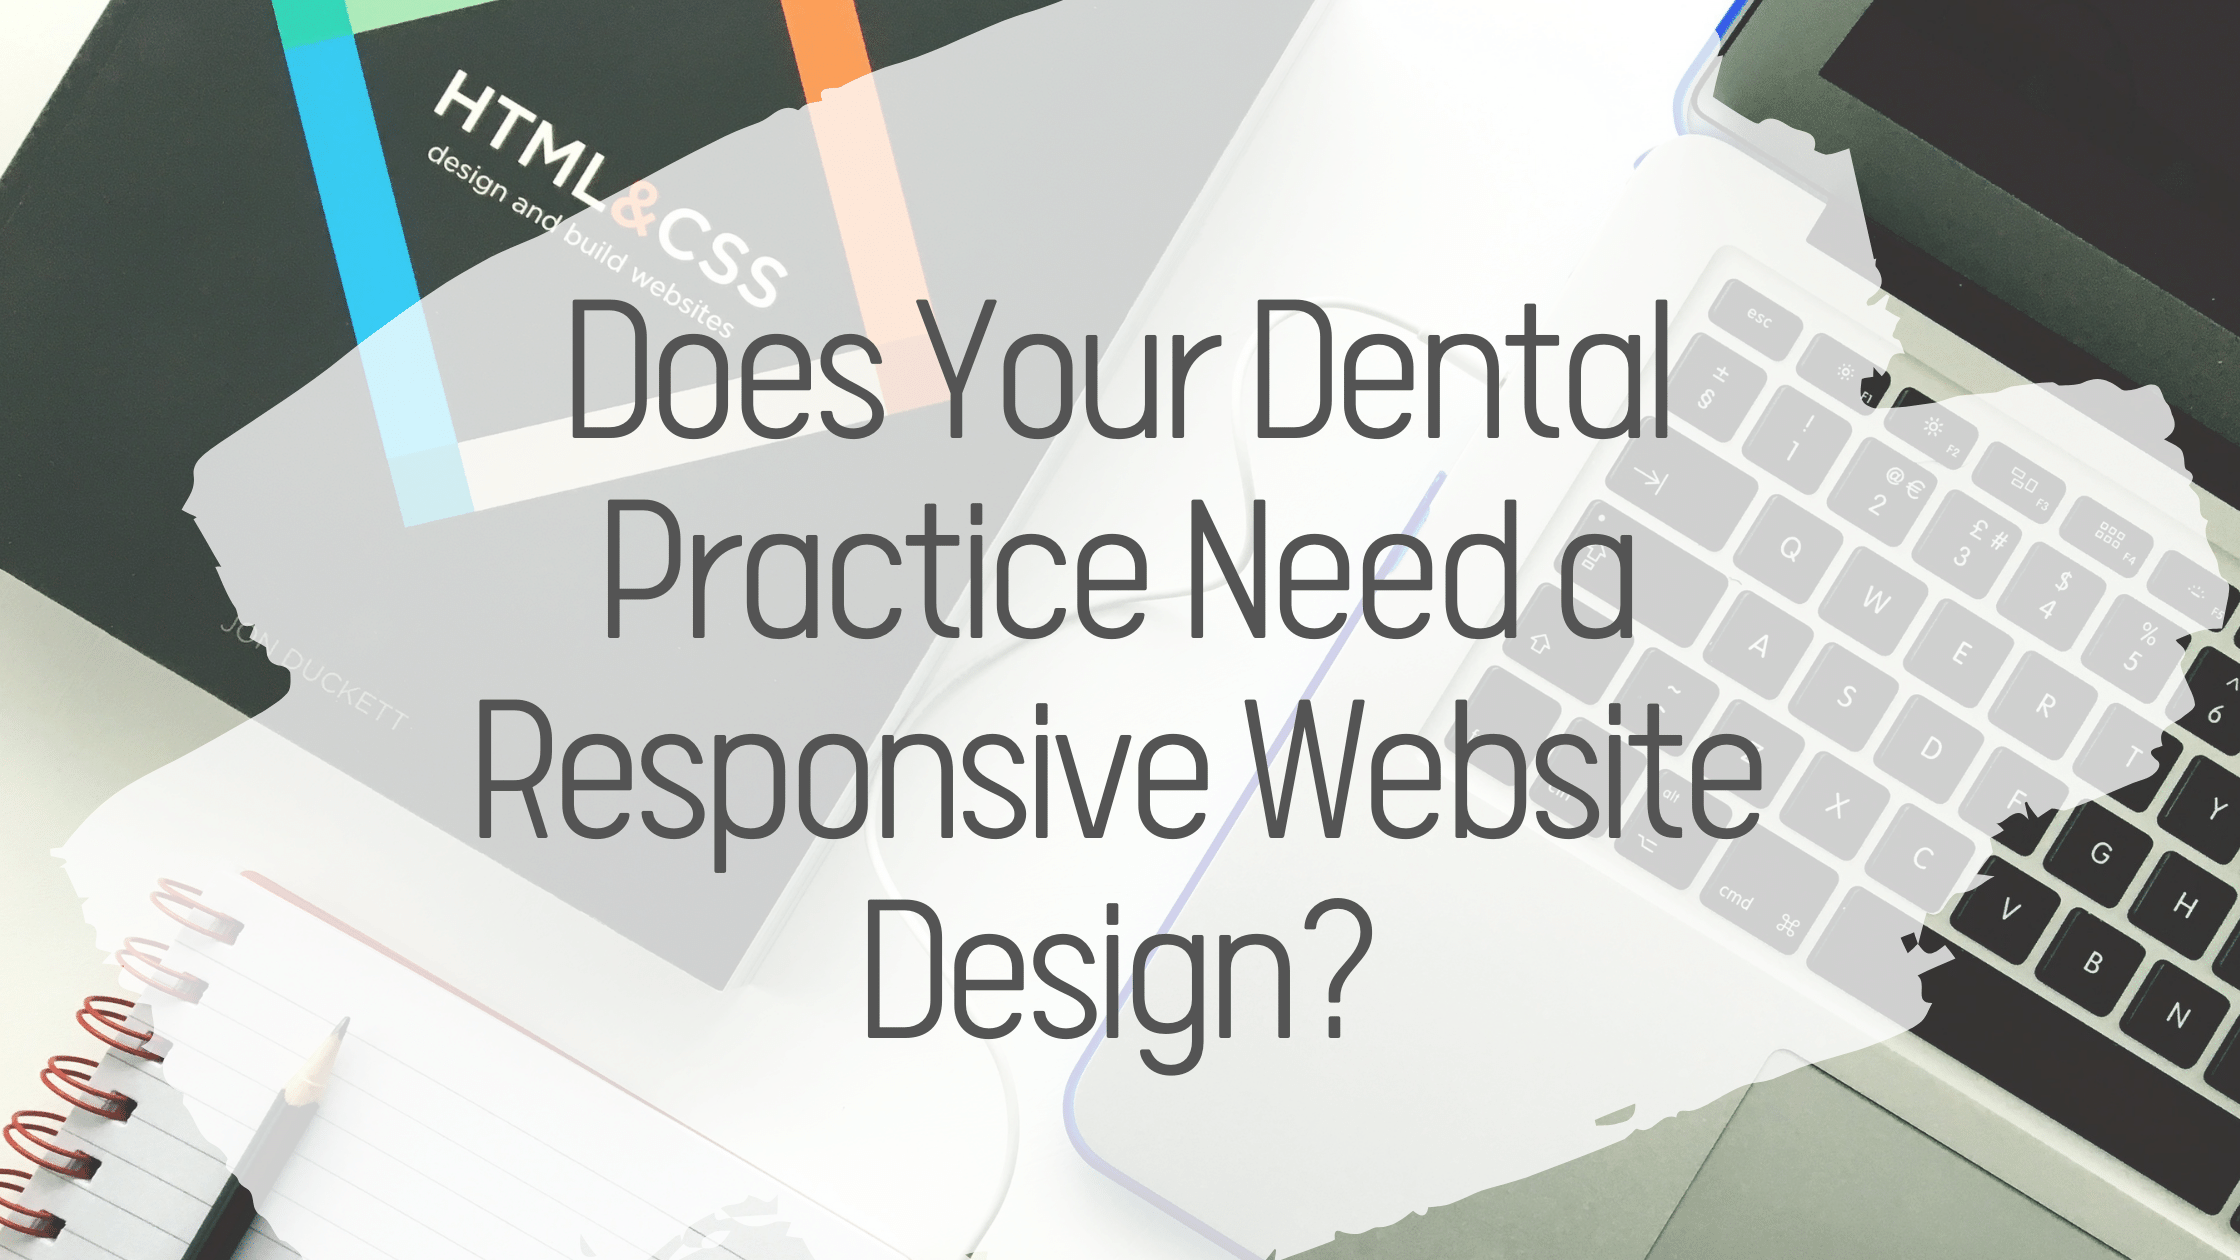 Does Your Dental Practice Need a Responsive Website Design